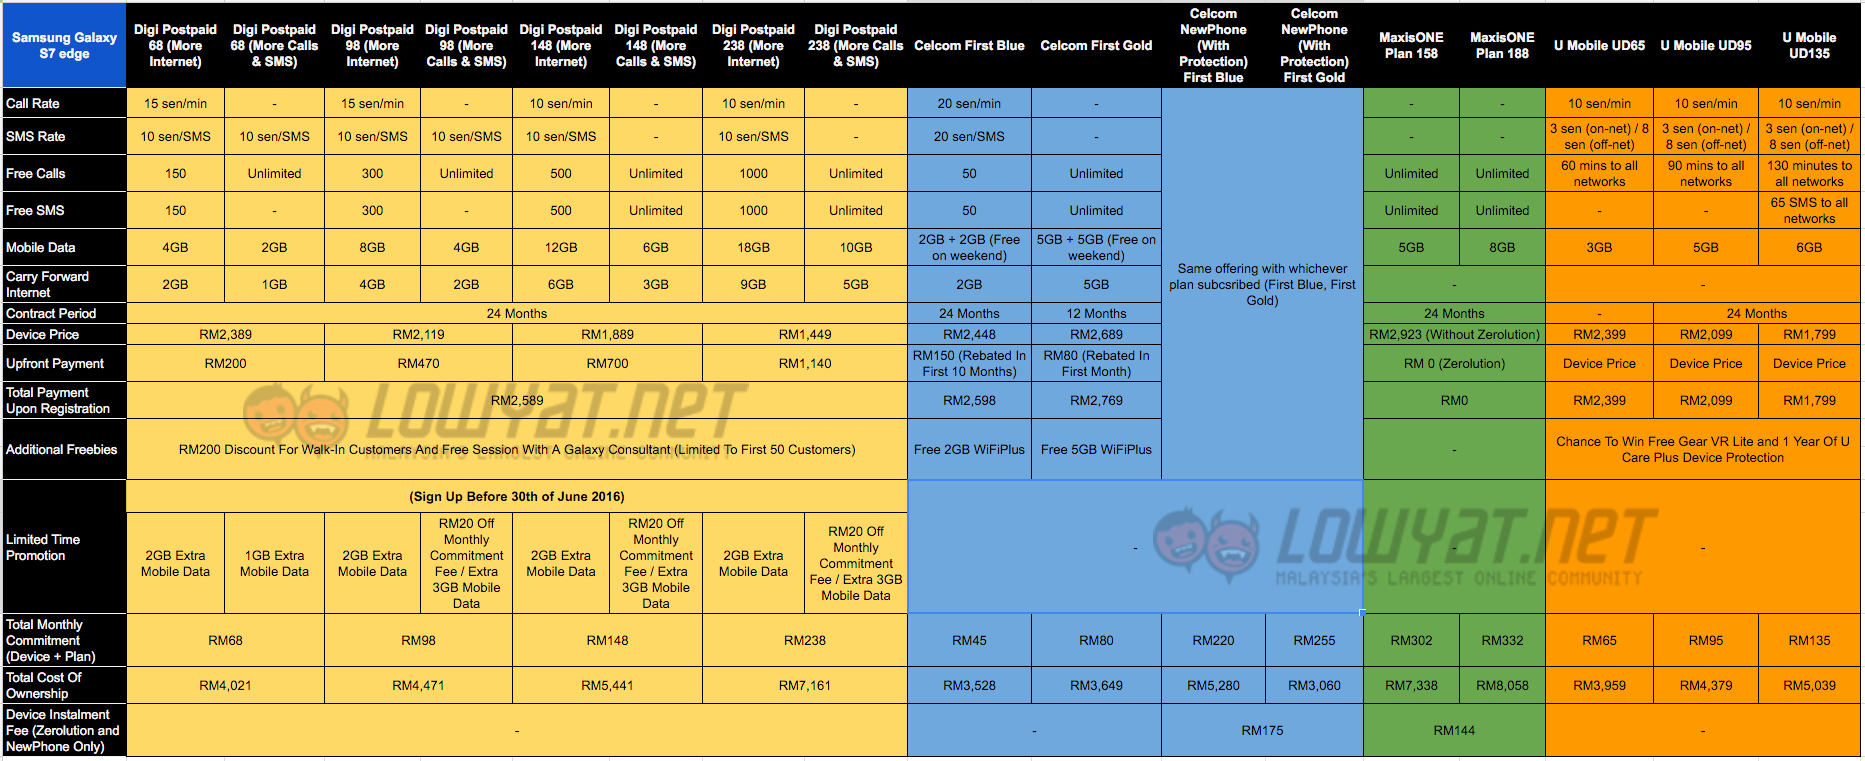 Galaxy-S7-edge-Telco-Comparison-Full-Table